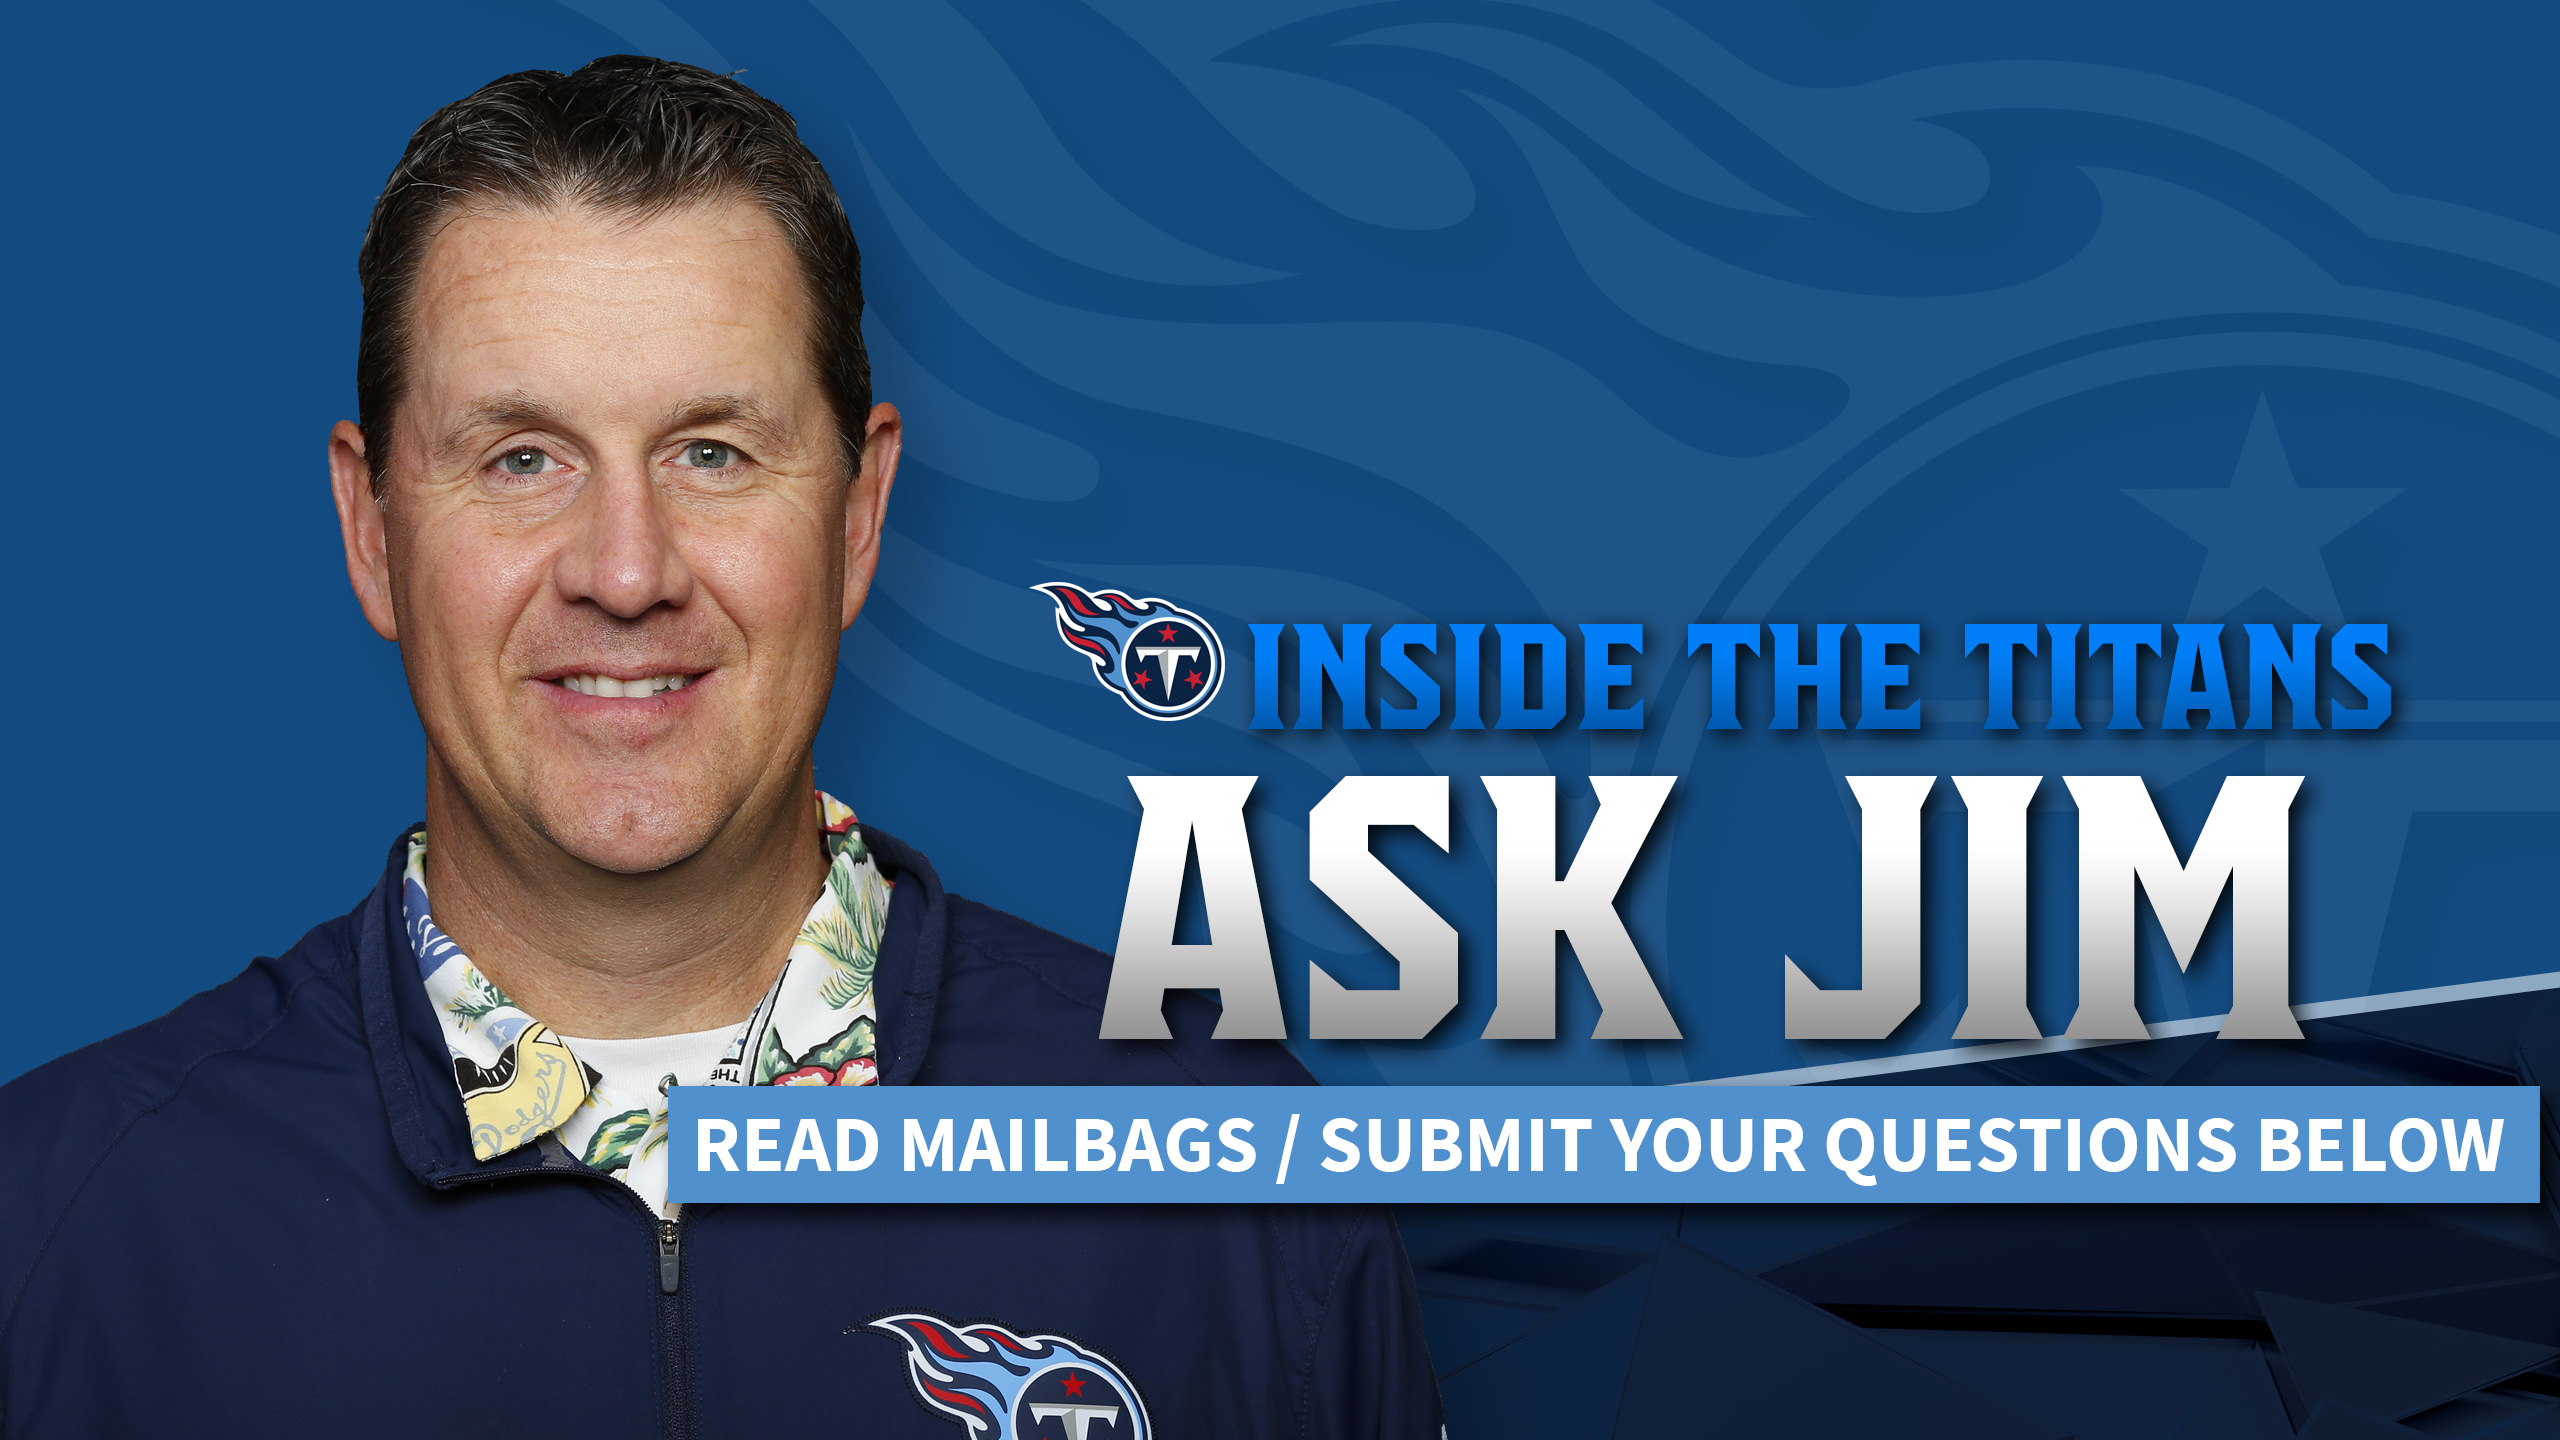 Have a question for Jim?